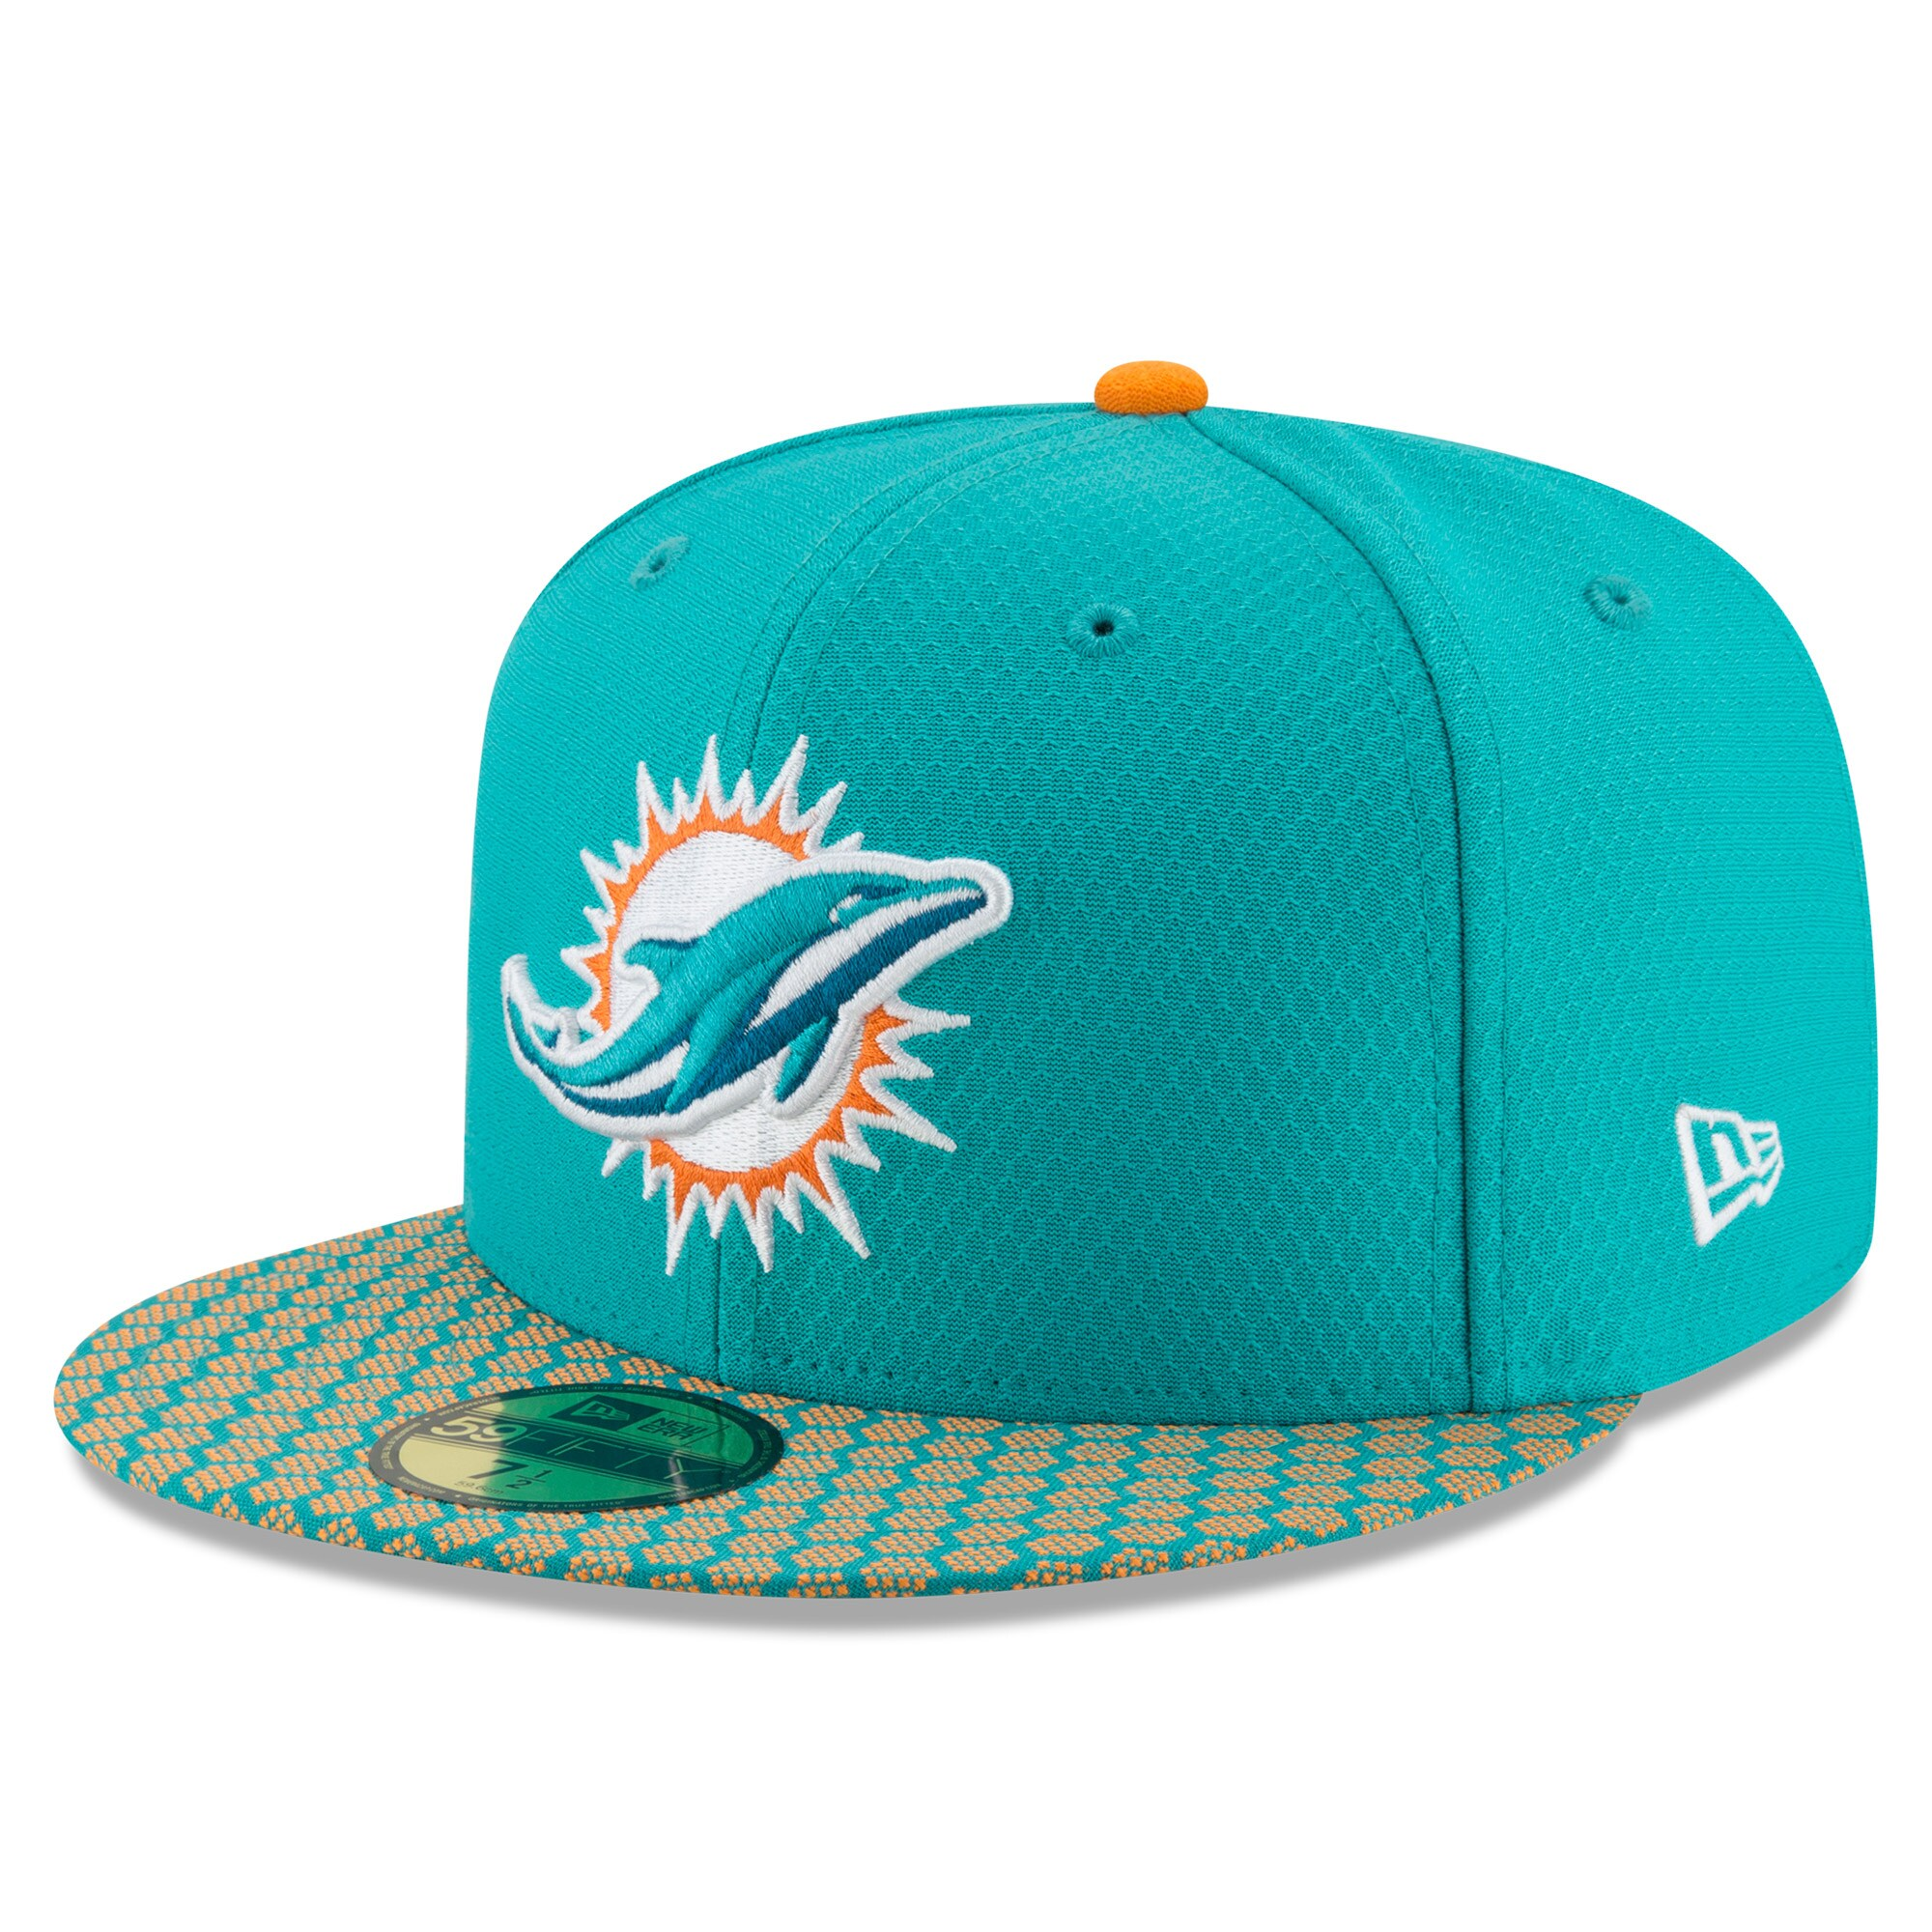 Miami Dolphins New Era 2017 Sideline Official 59FIFTY Fitted Hat - Aqua